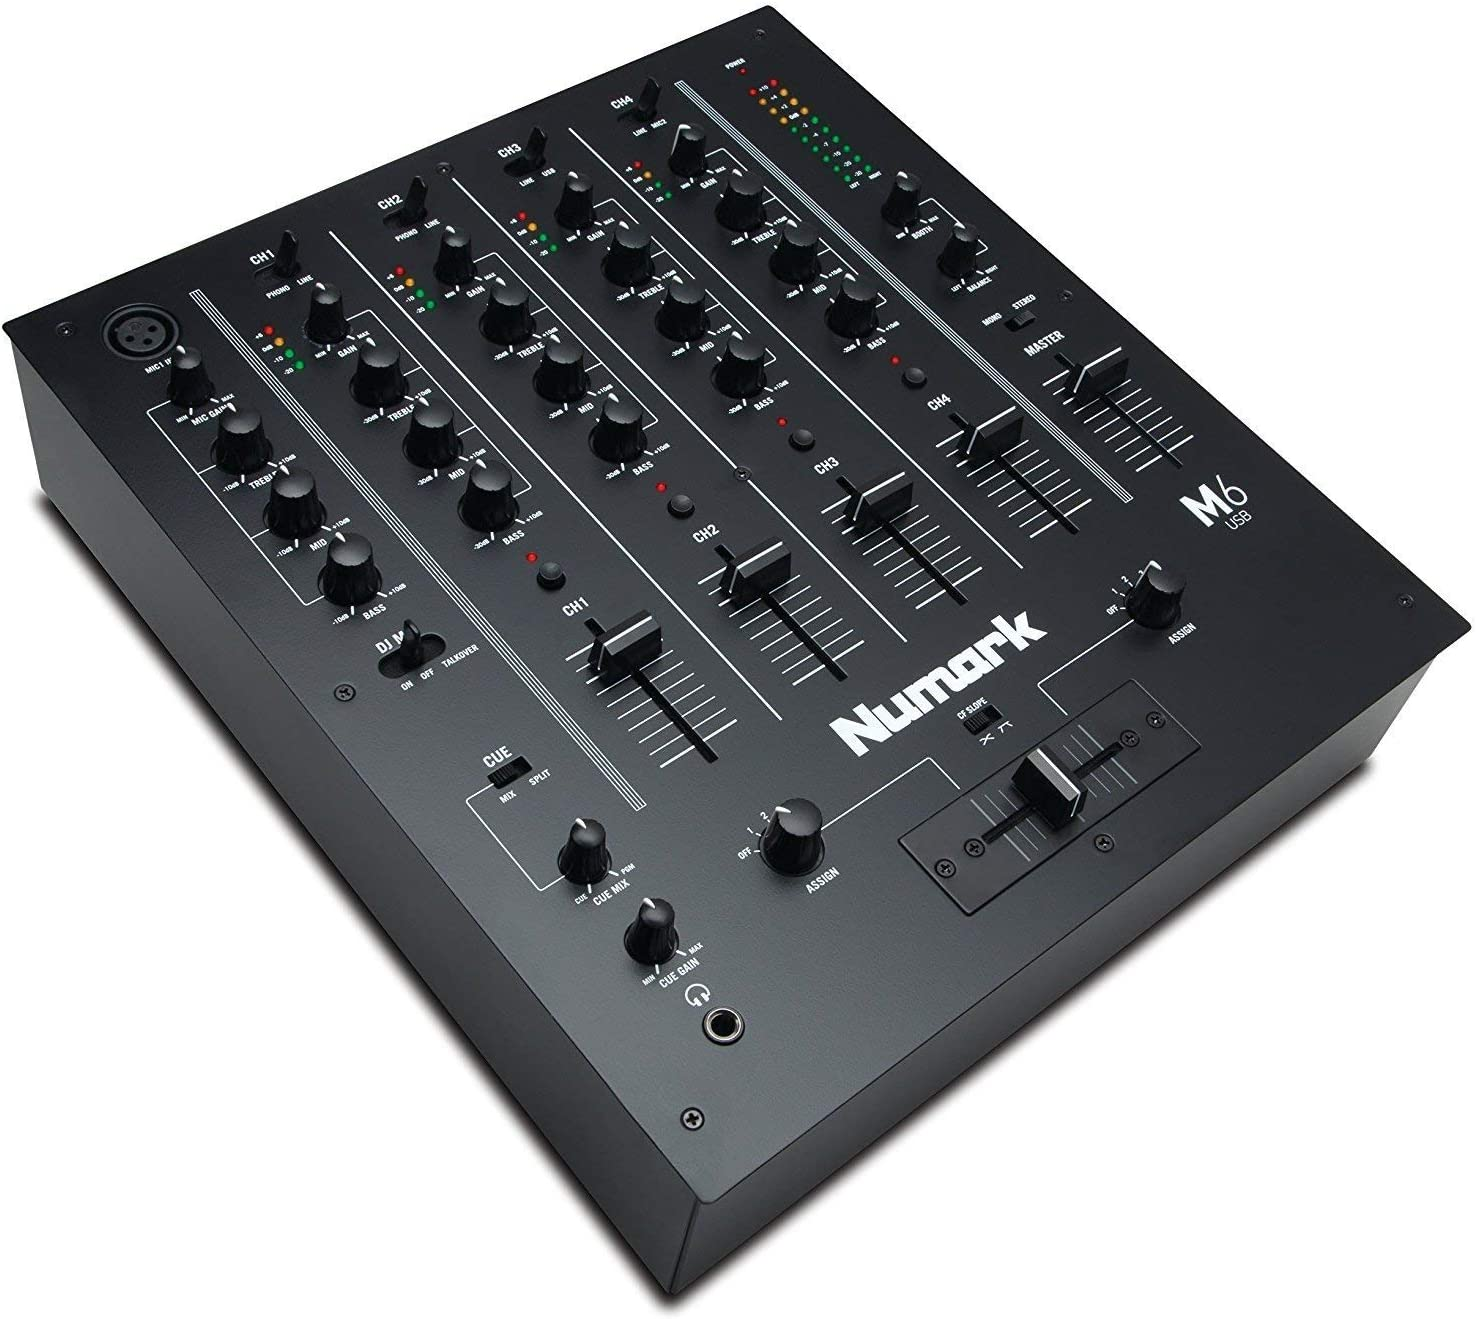 Numark M6 USB | 4-Channel DJ Mixer with On-Board Audio Interface, 3-Band EQ, Club-Ready Inputs, Microphone Input and Replaceable Crossfader with Slope Control